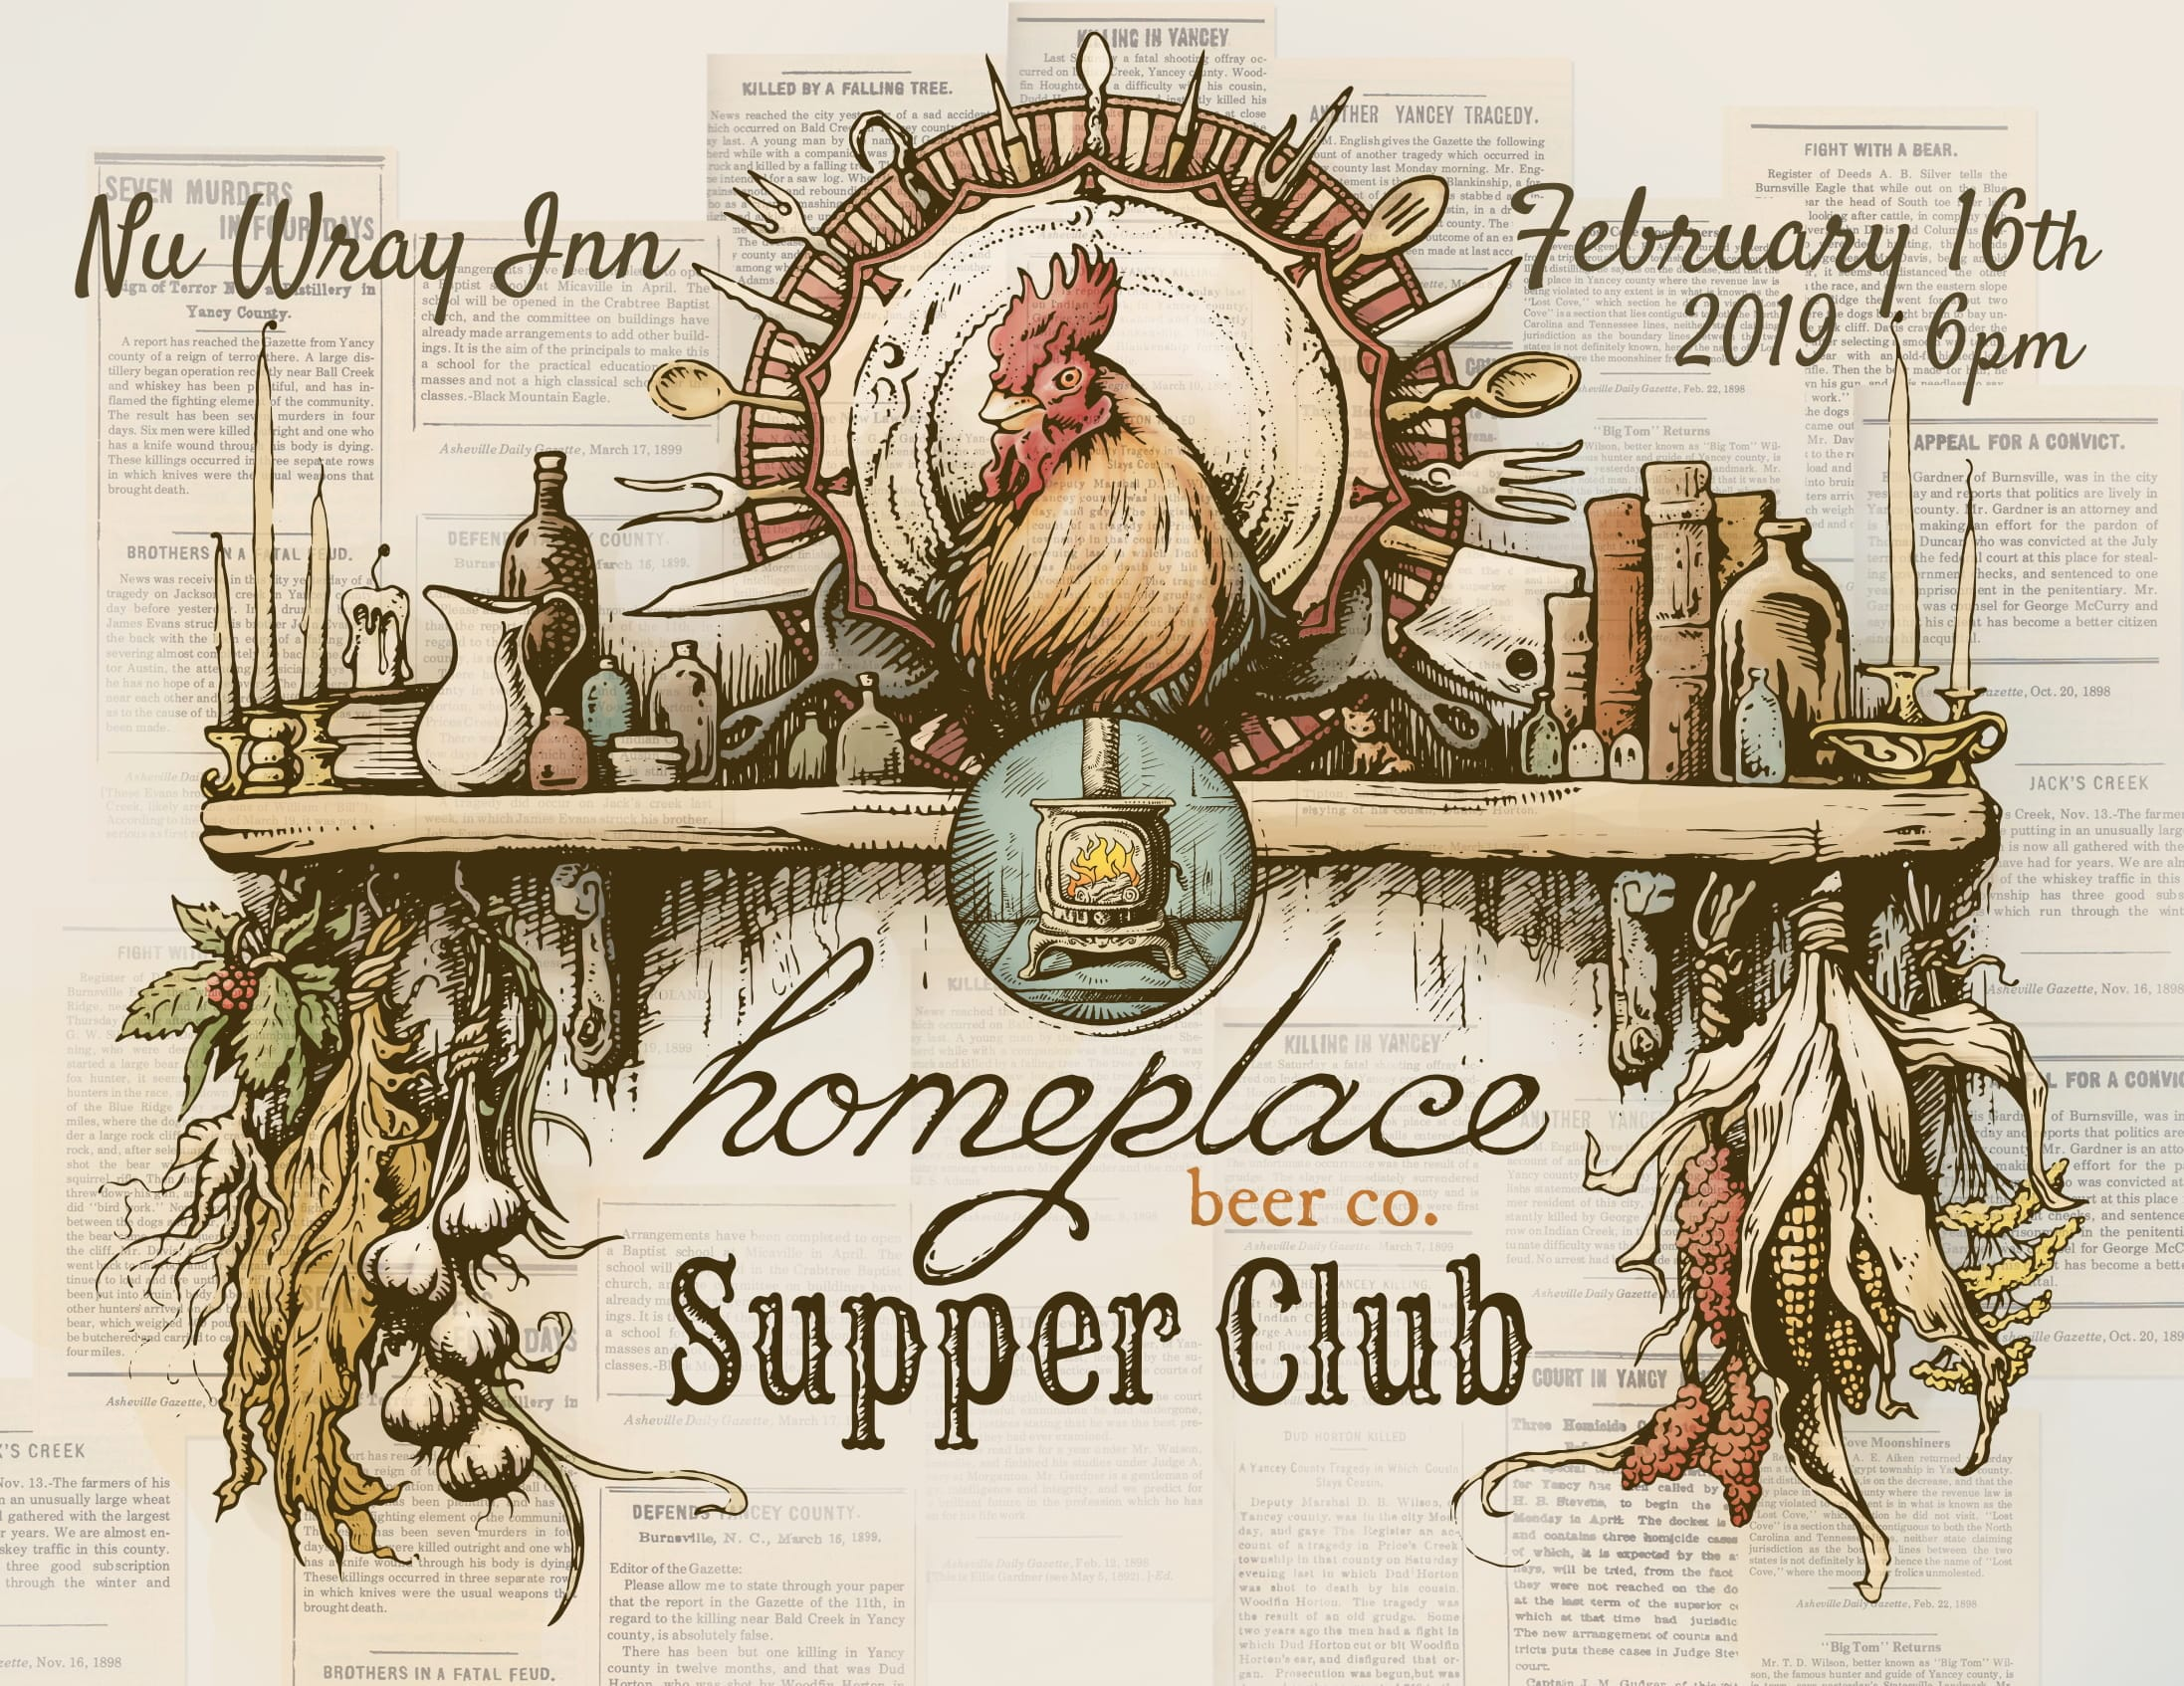 Homeplace Supper Club